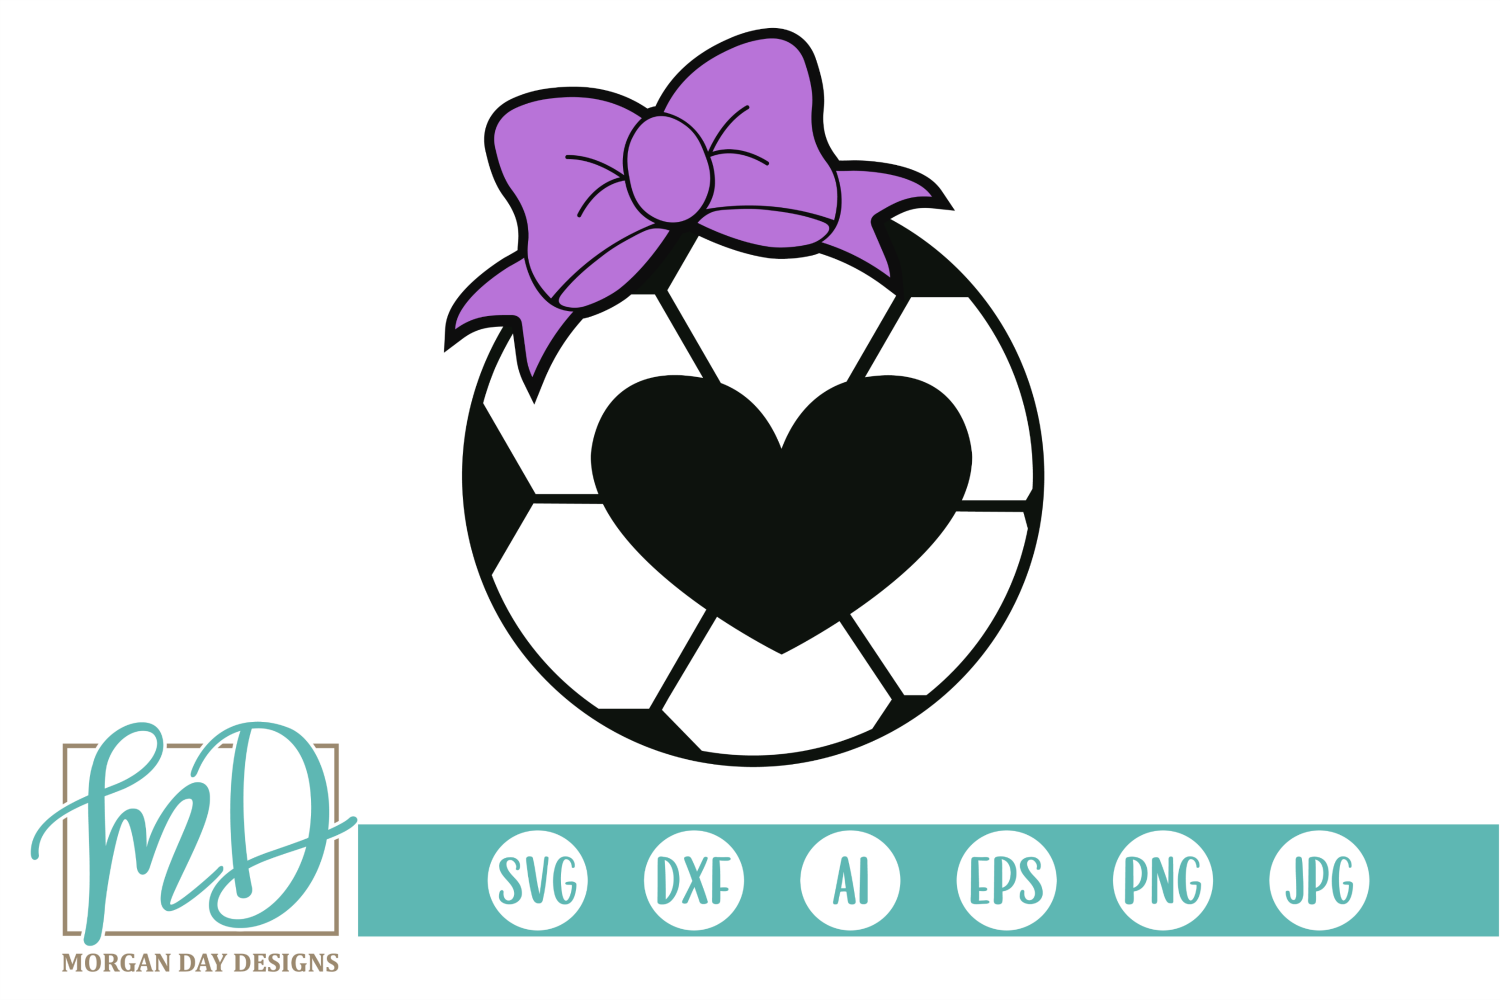 Soccer Heart with Bow SVG, DXF, AI, EPS, PNG, JPEG example image 1